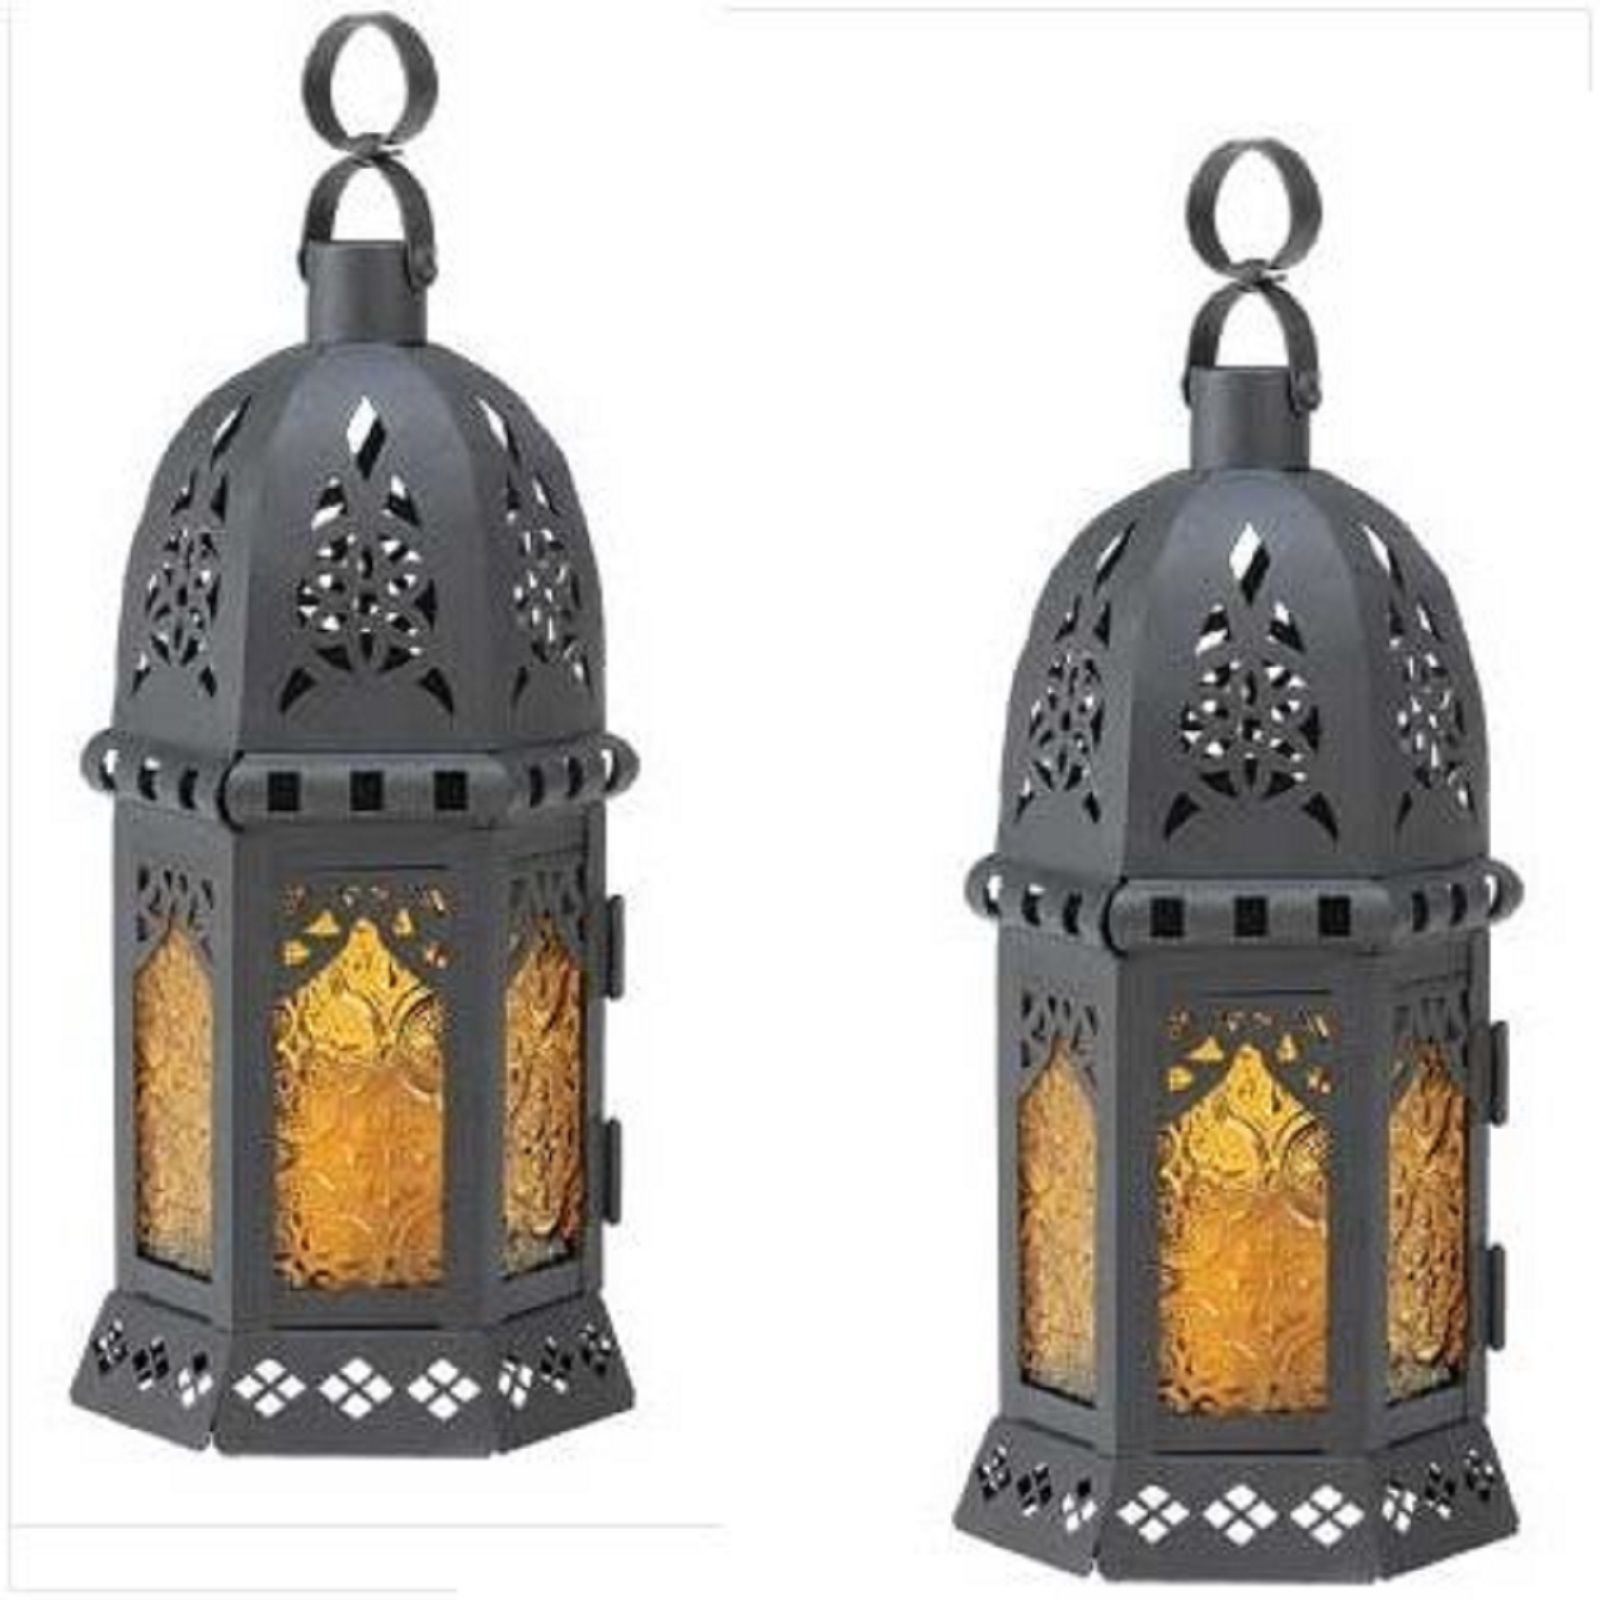 15 Yellow Black Lantern Moroccan Style Wedding Centerpieces image 1